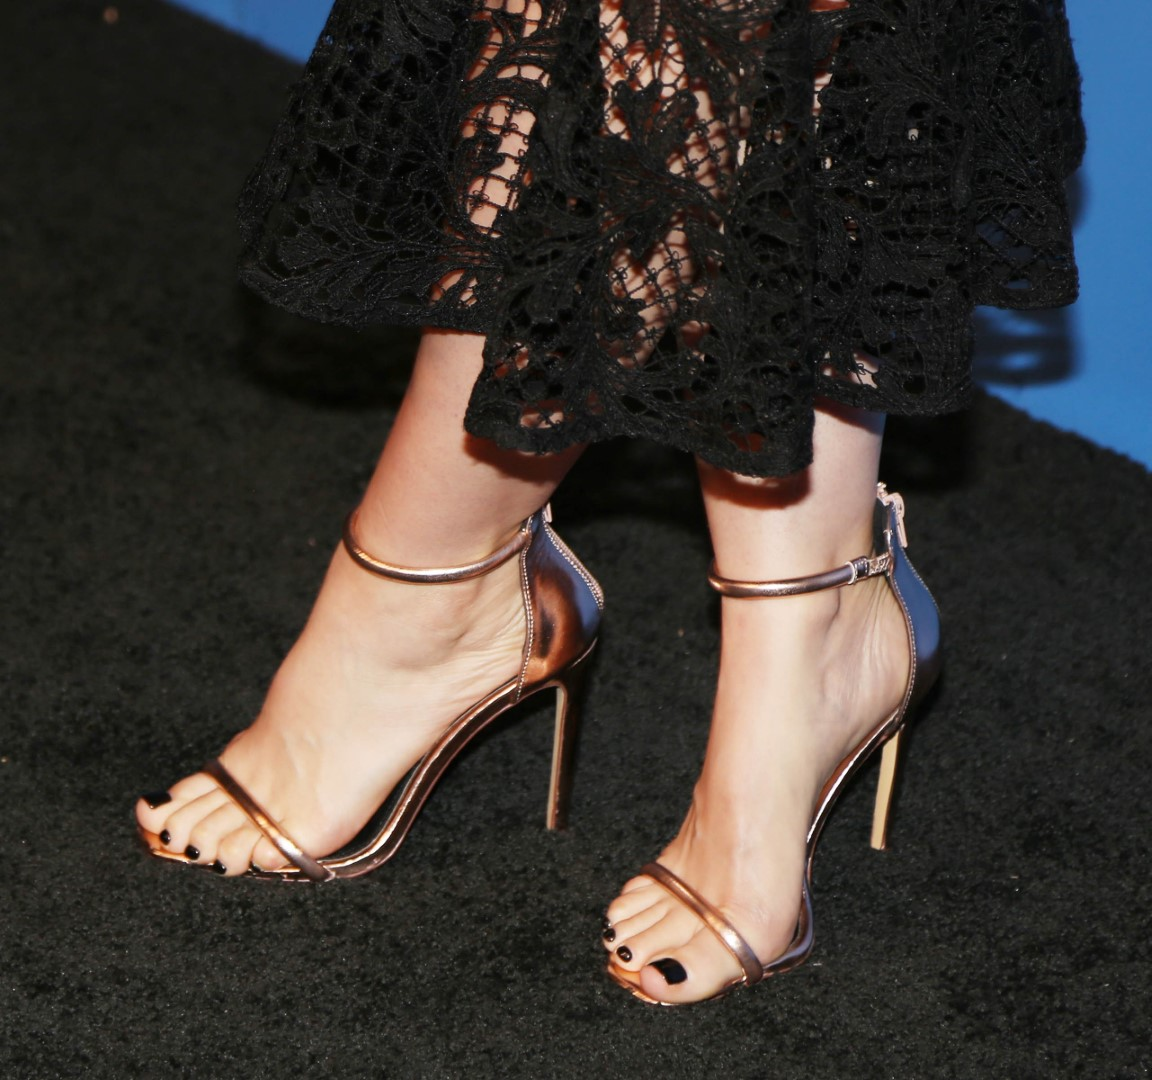 RT if you like Mena Suvari's Feet  #MenaSuvari  #feet #toes #CelebrityFeet #Celebrity #CelebritySoles #CelebrityToes #Soles #FeetPics #FeetPicture https://t.co/EtaENsHNnZ https://t.co/pGzhuxsJur